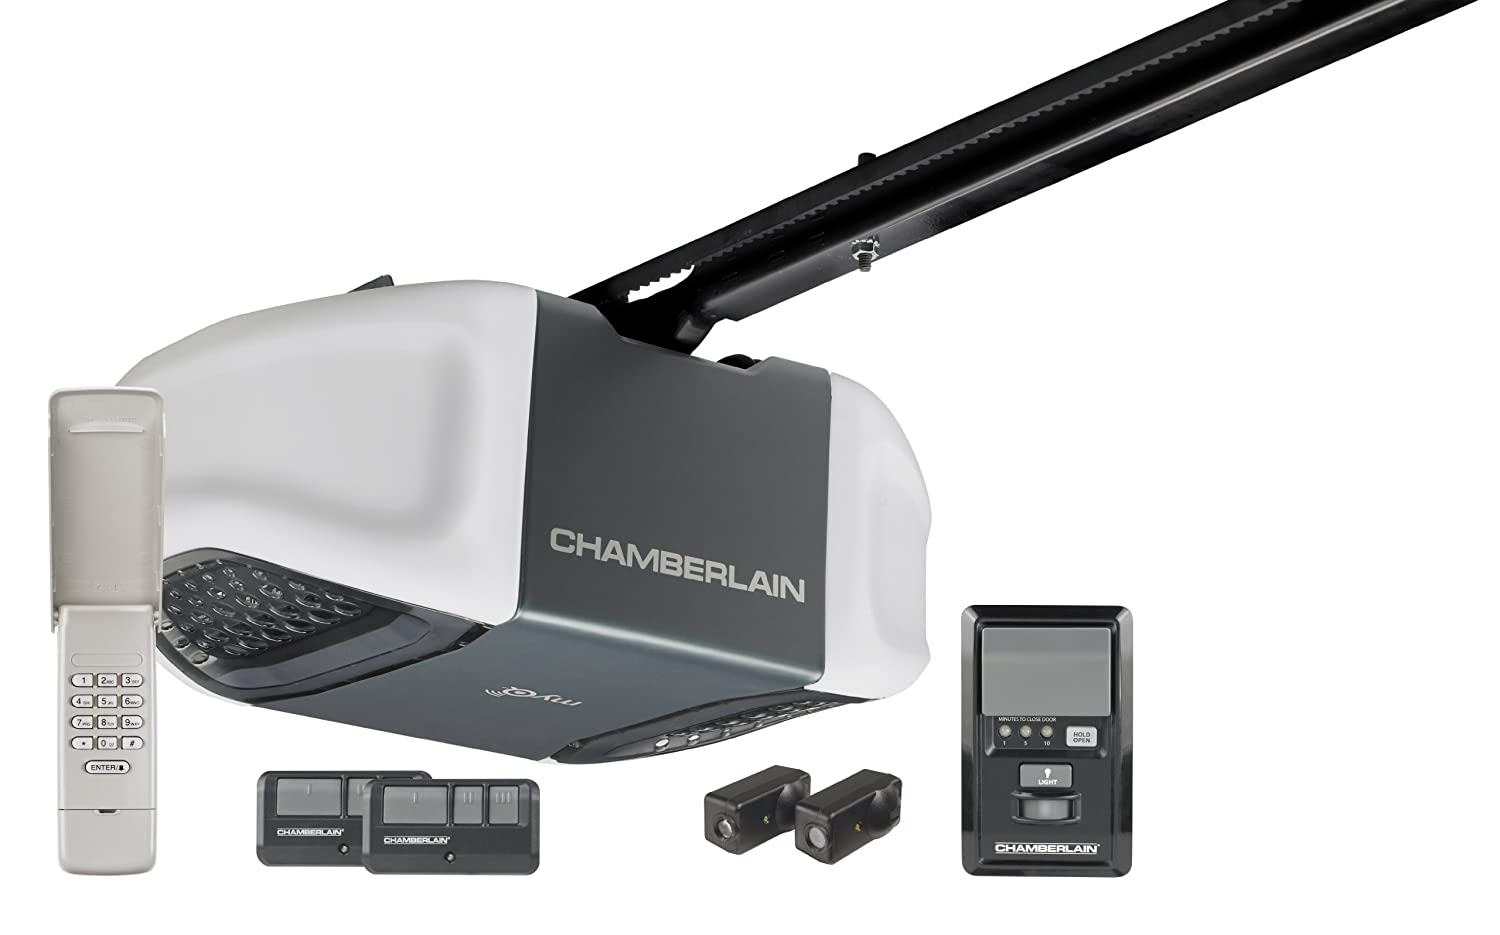 Best Garage Door Opener Reviews  Ultimate Buying Guide  Garage Door Opener Systemnet